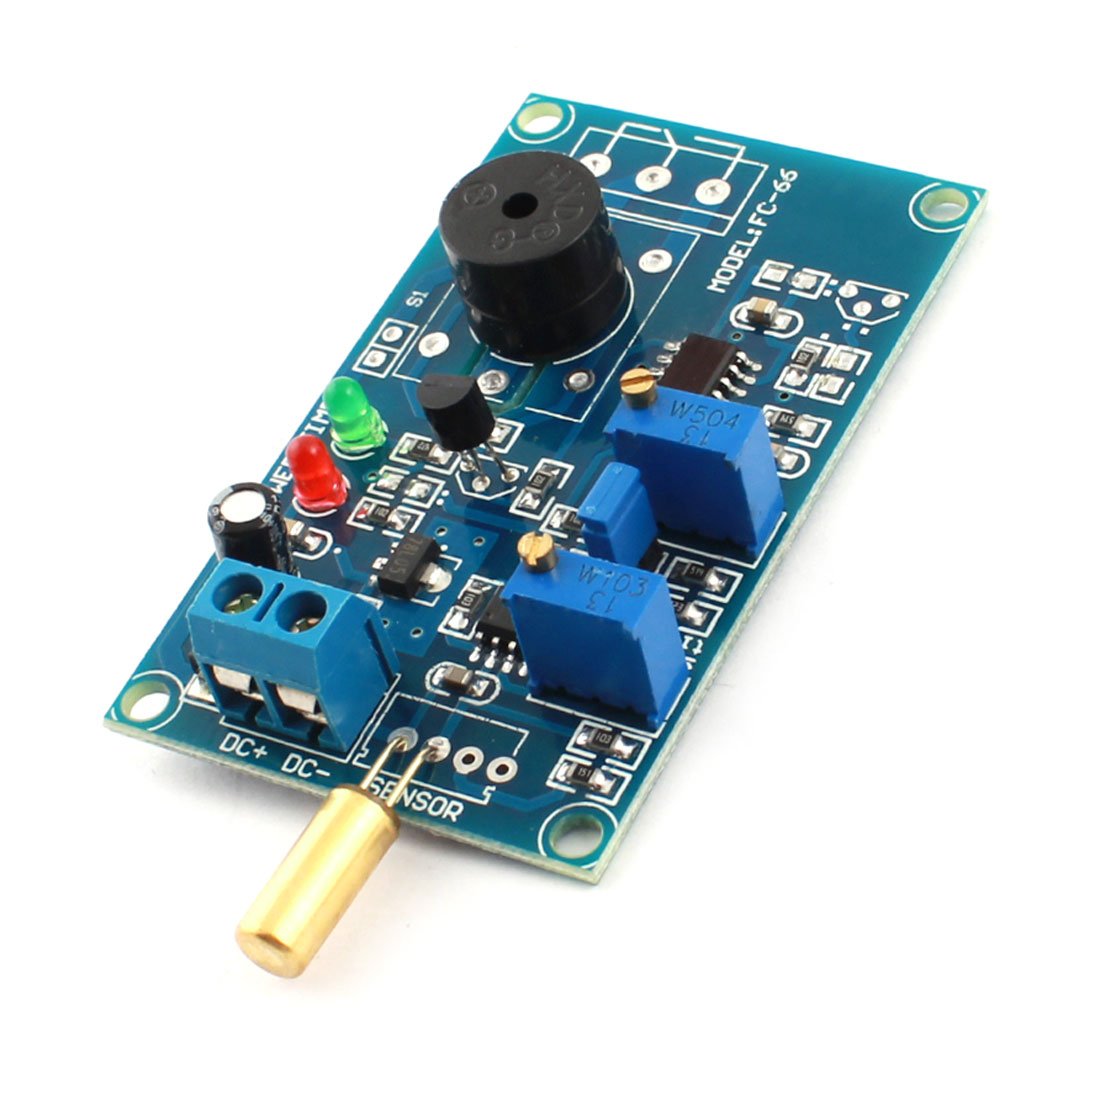 0-20s Angular Transducer Dumping Angle Sensor Inclination Time Delay Alarm Buzzer Module DC12V